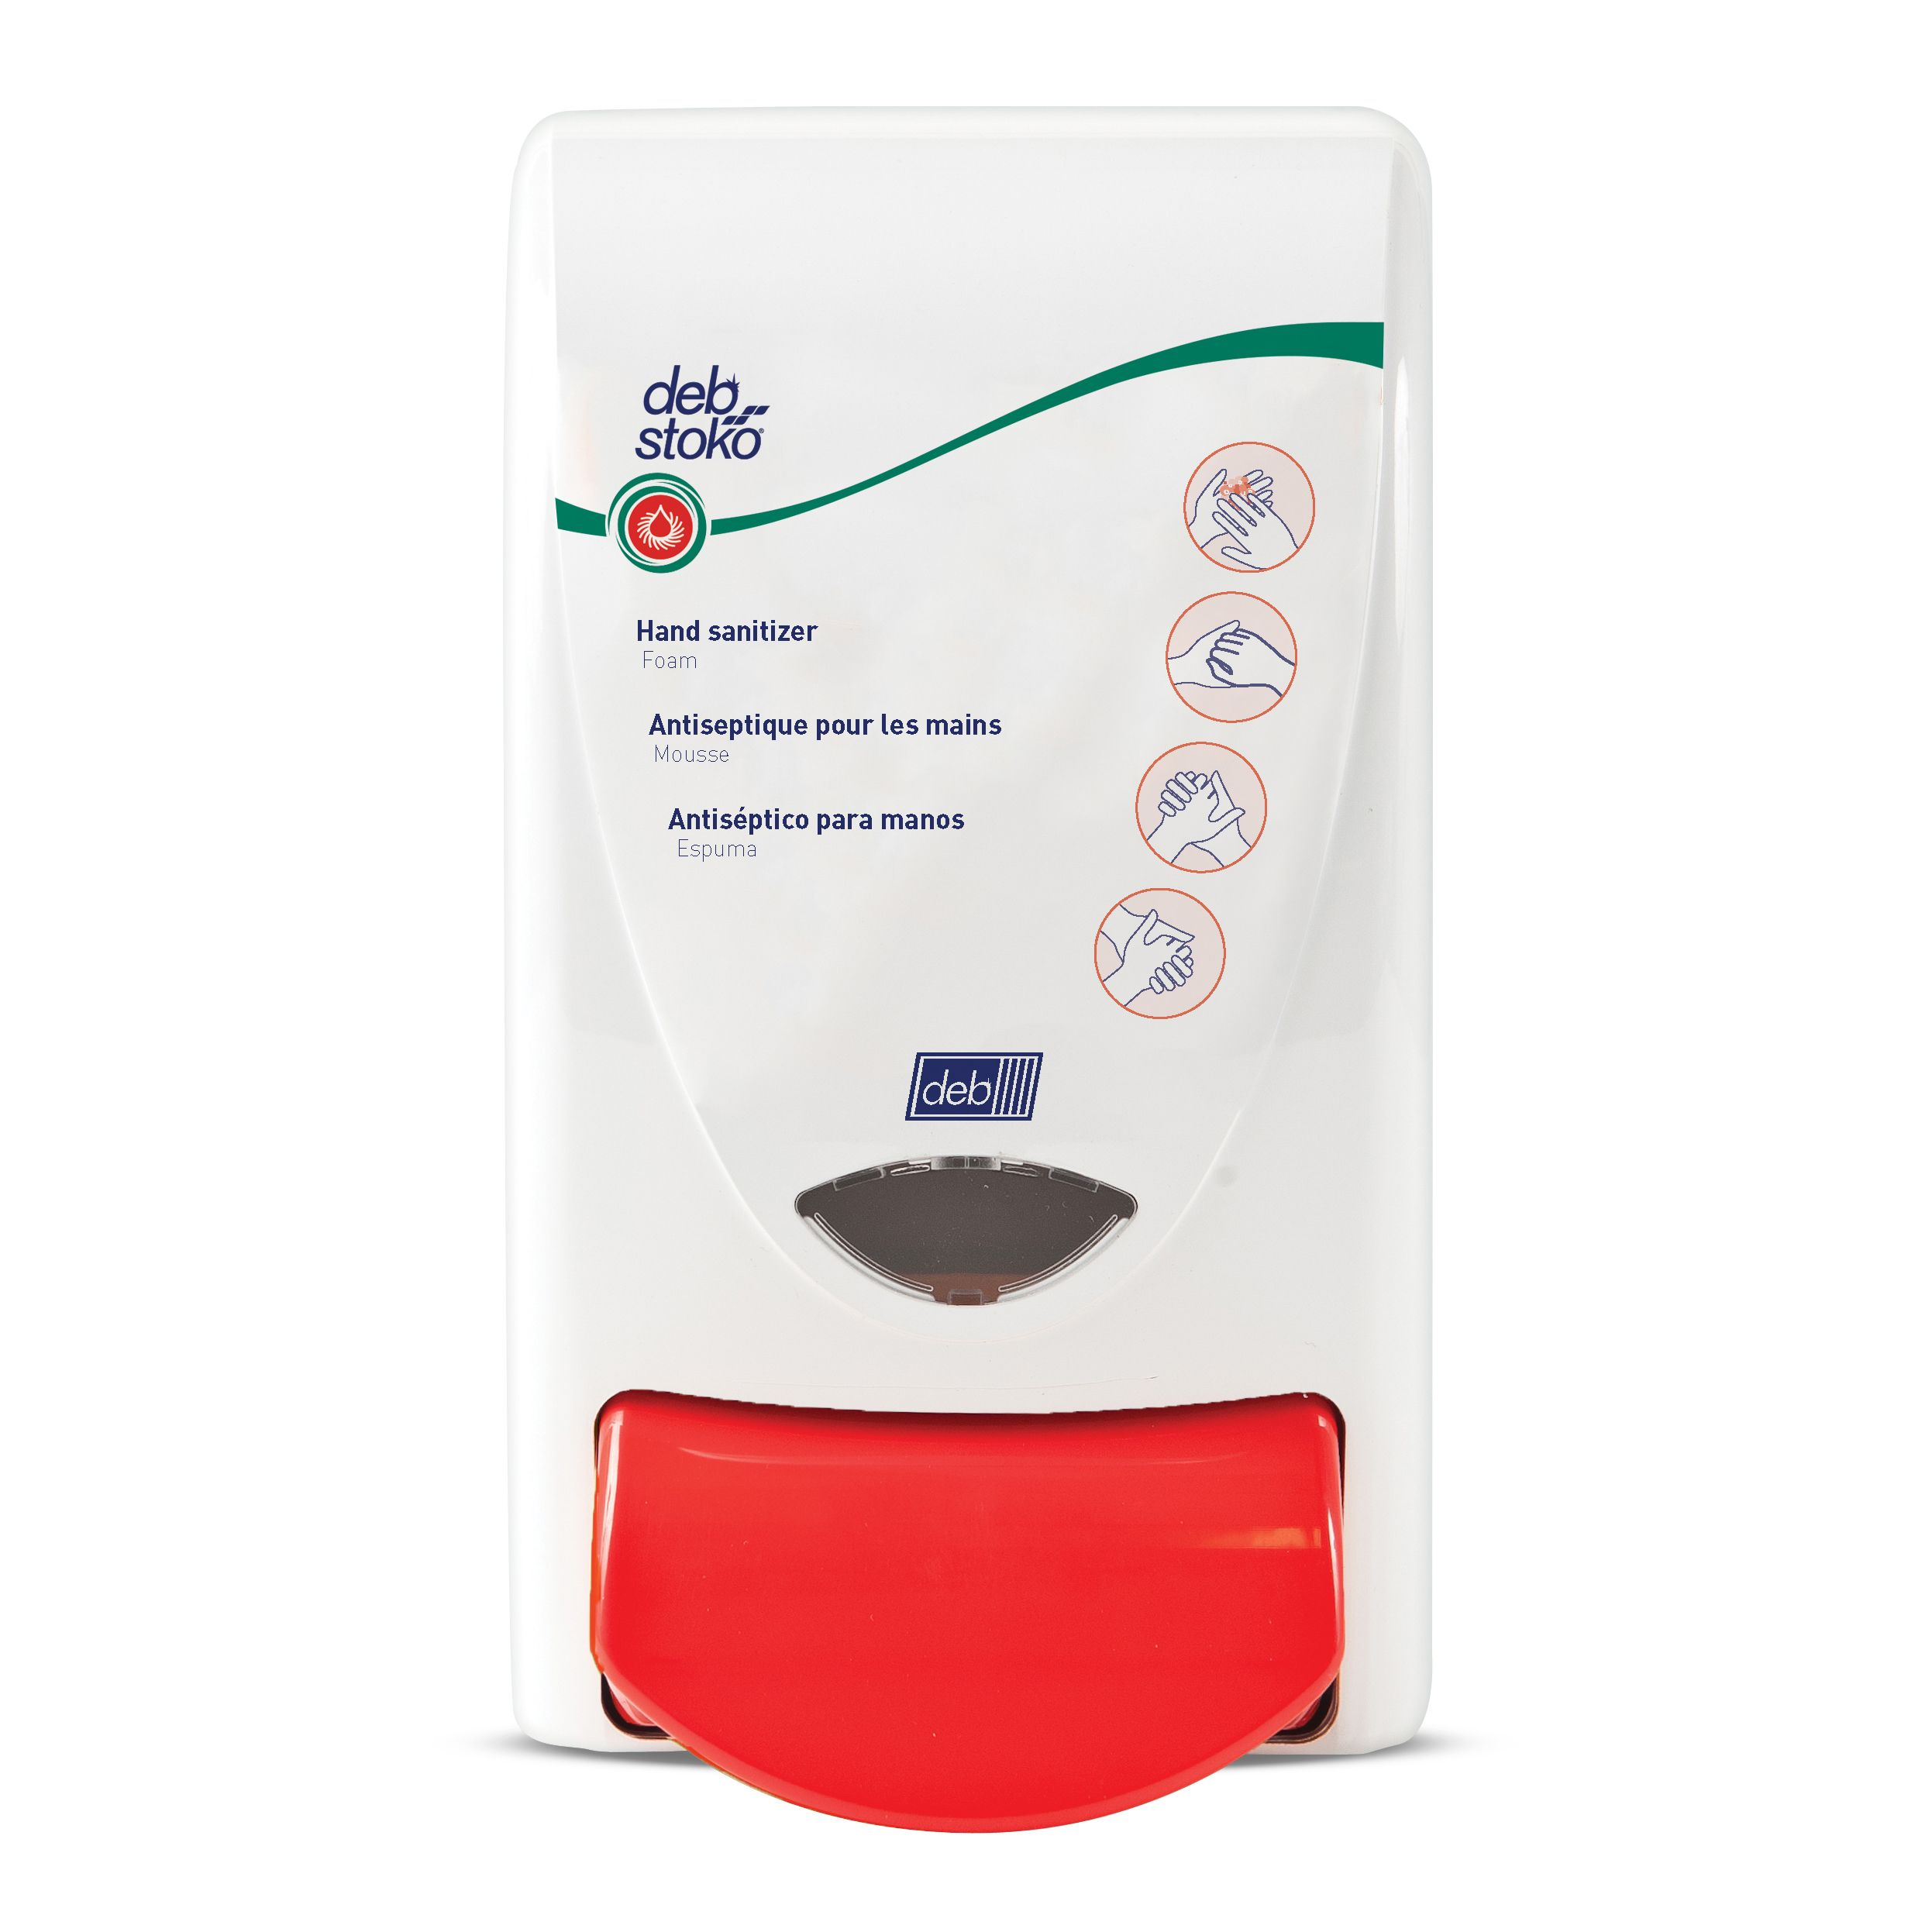 Stoko Estesol Classic Is An Economical Light Duty Hand Cleanser